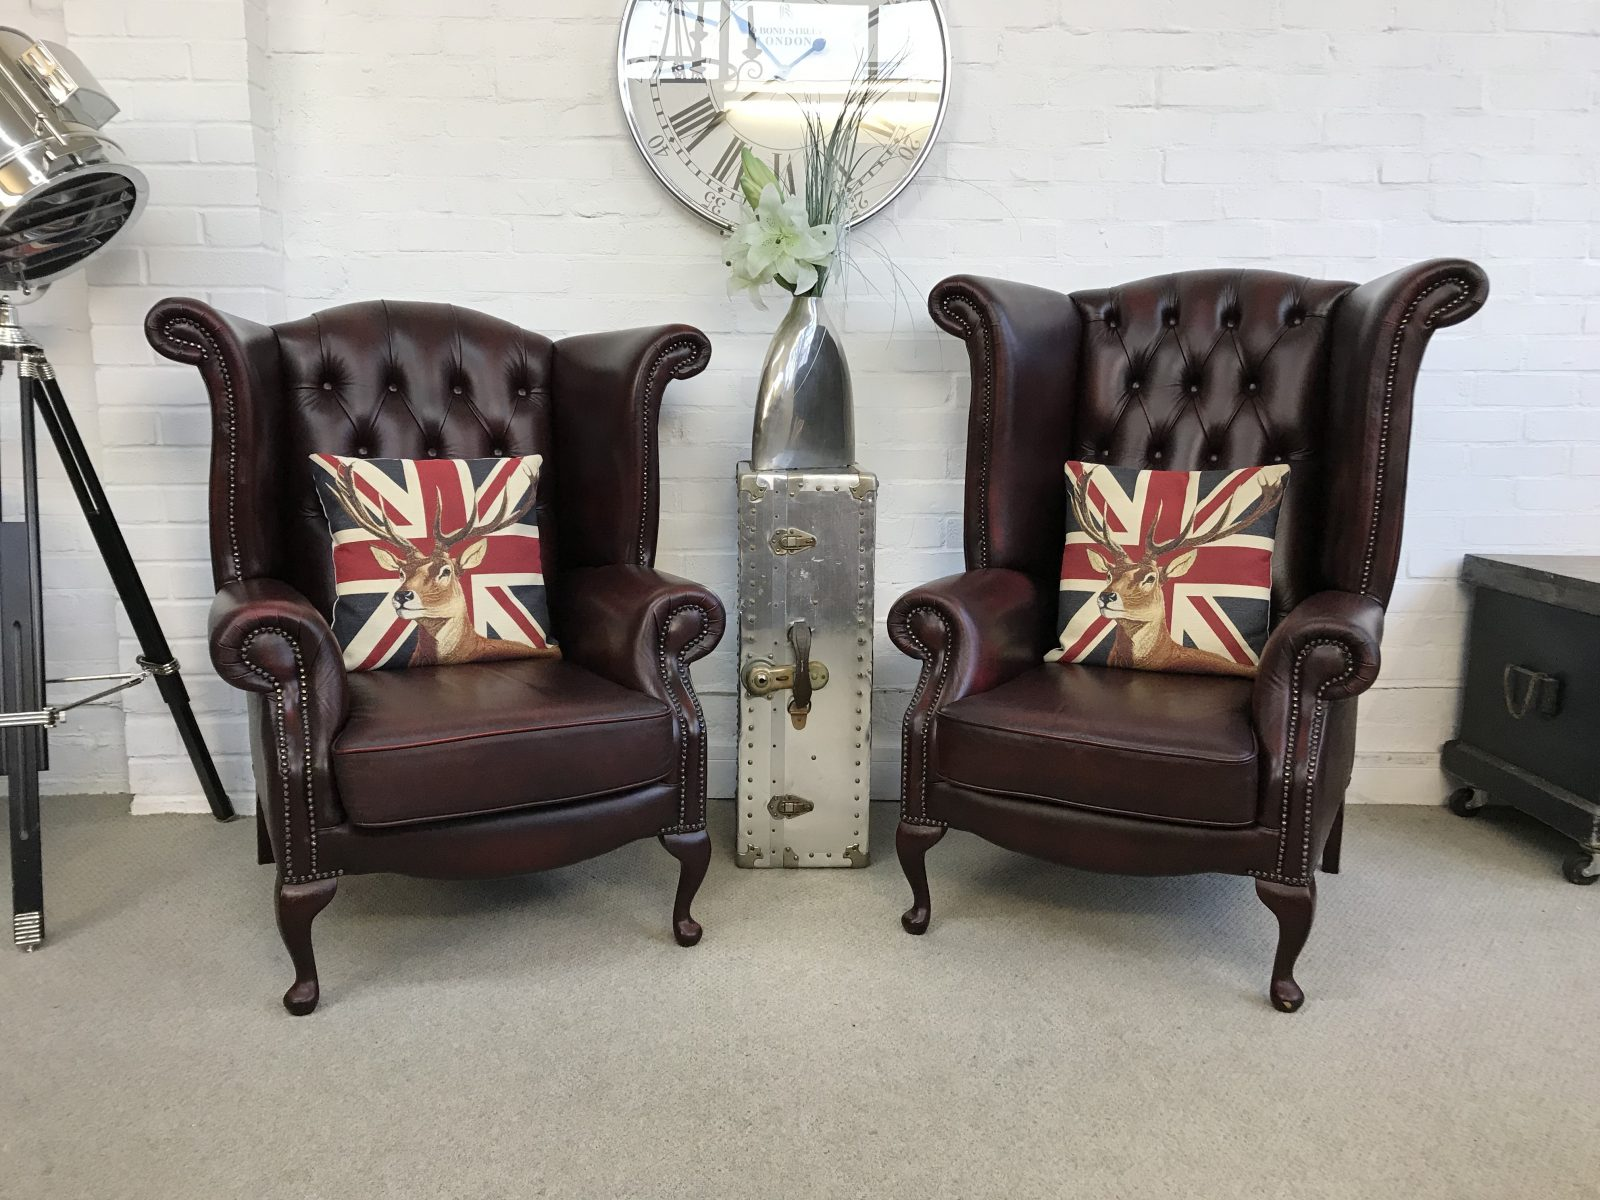 King And Queen Wingback Armchairs & Footstool.